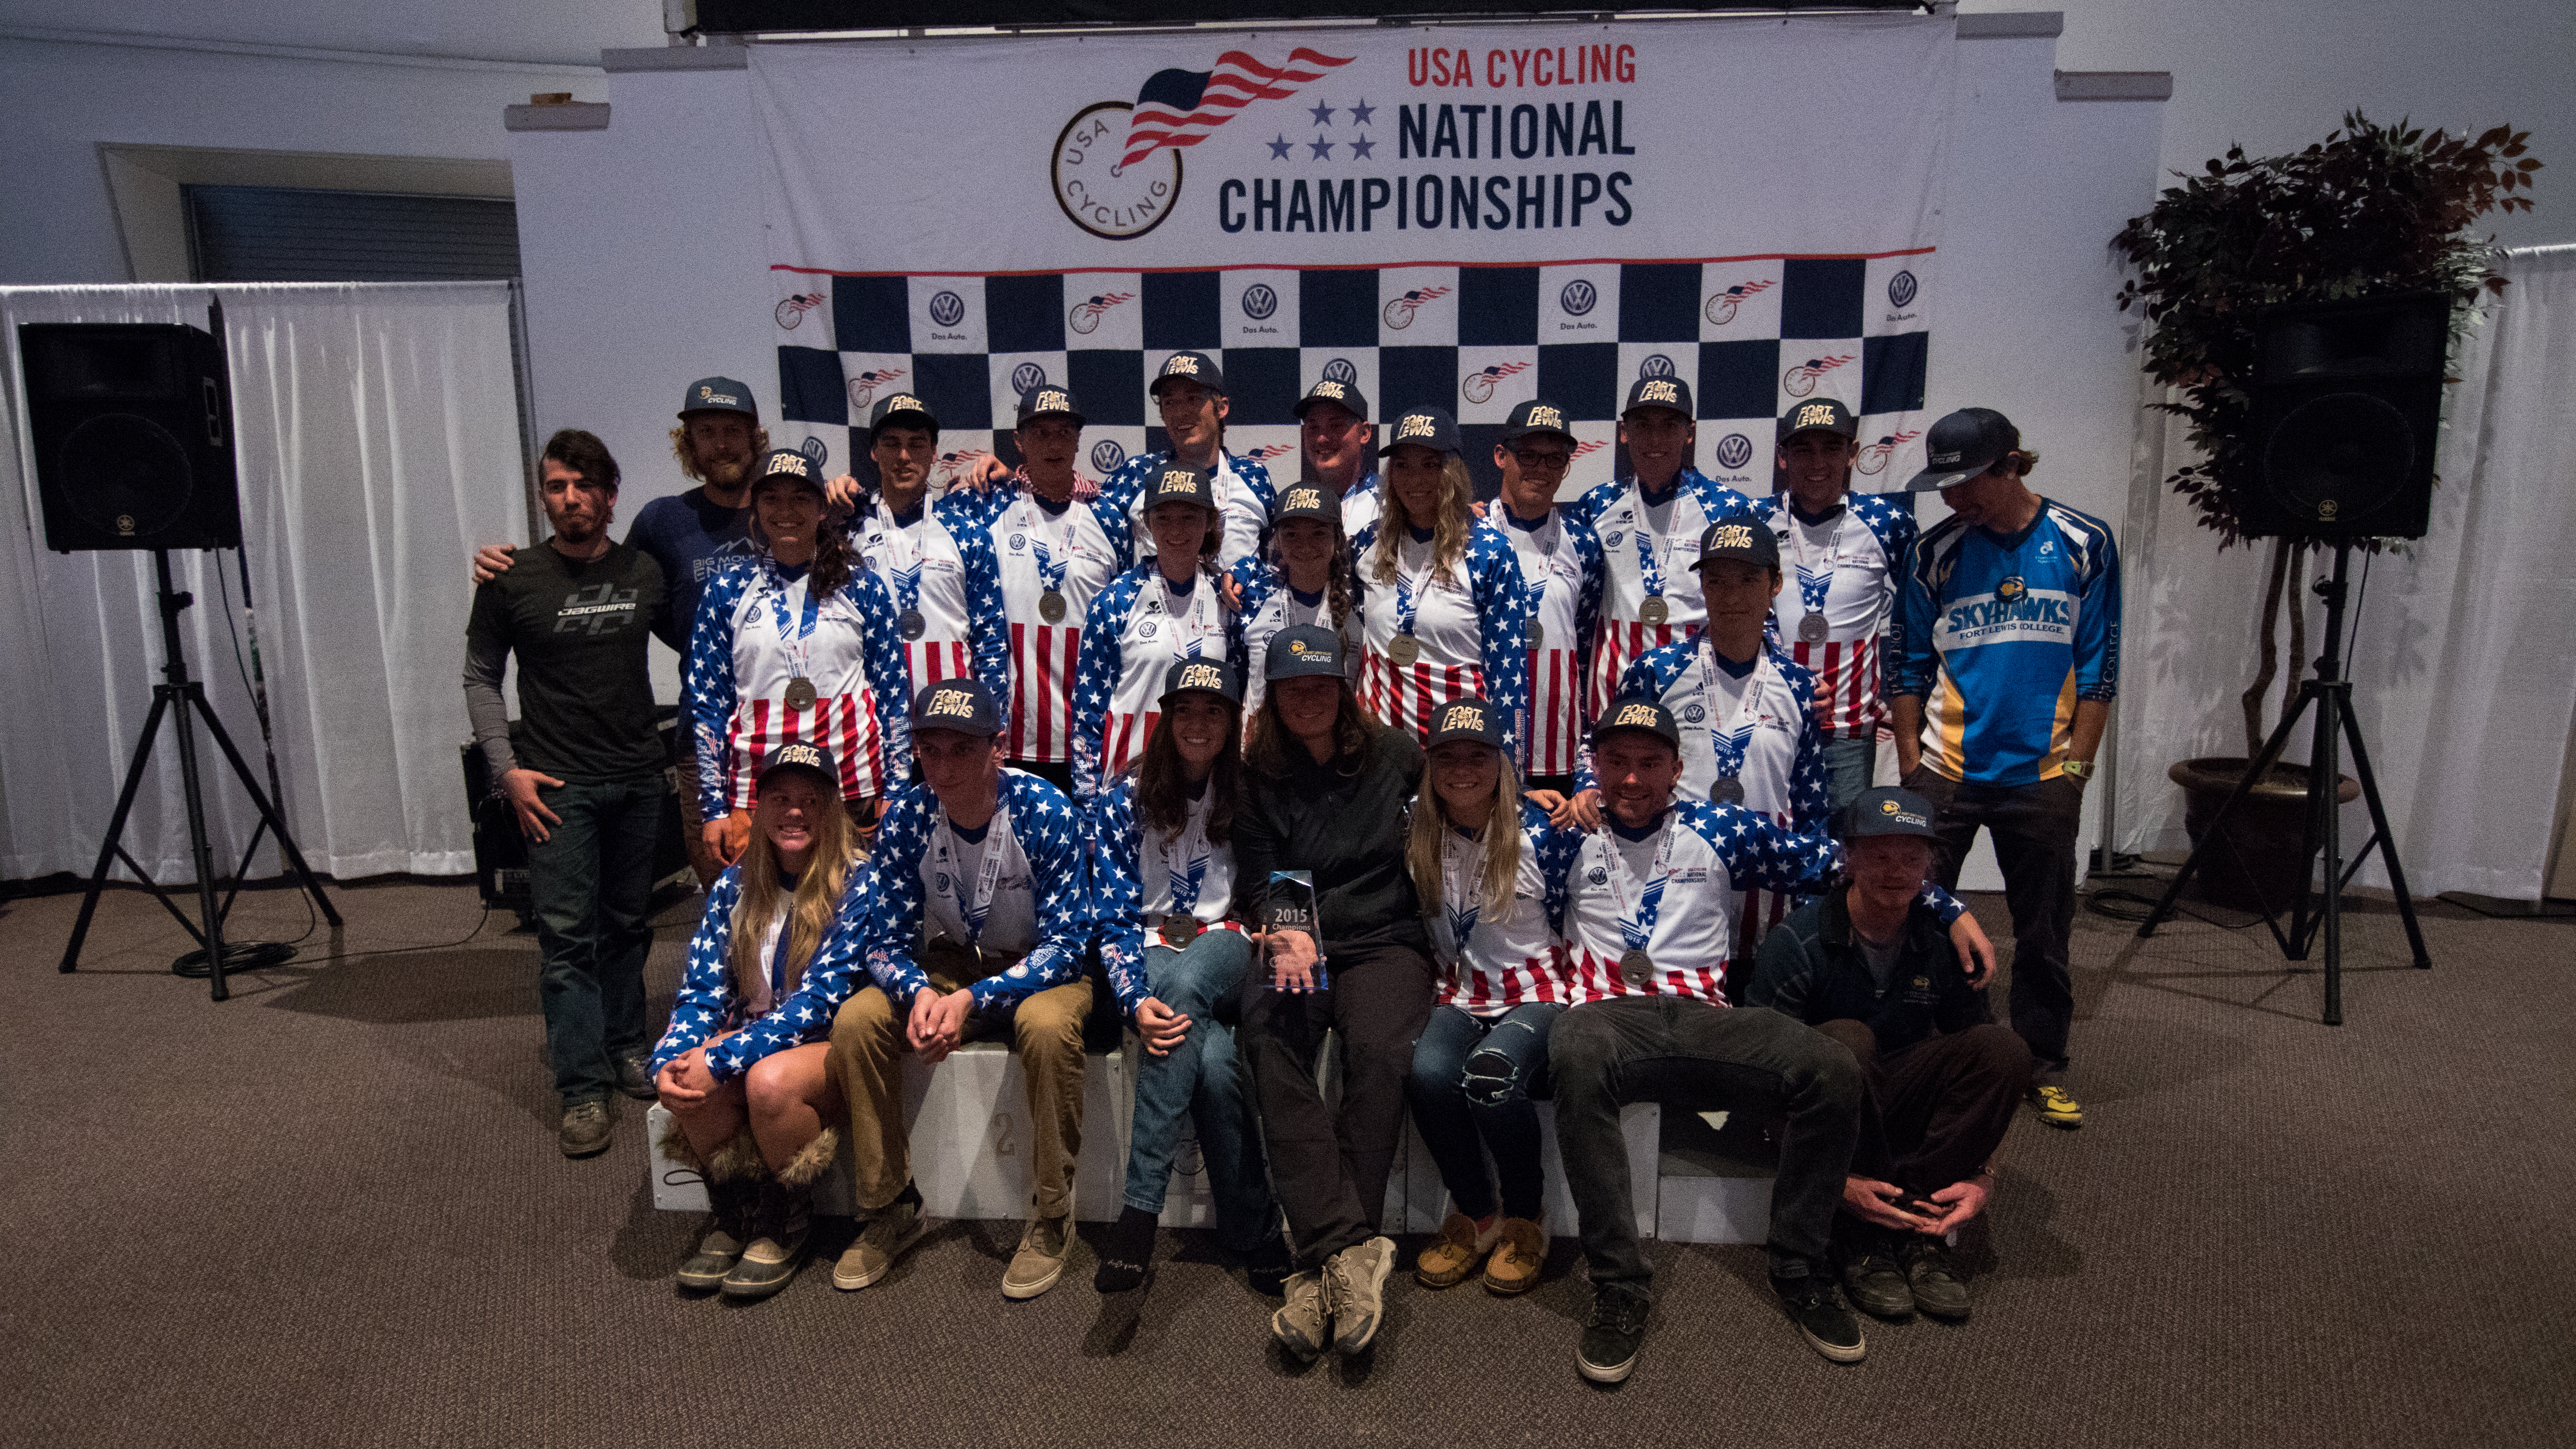 Your 2015 National Champions!